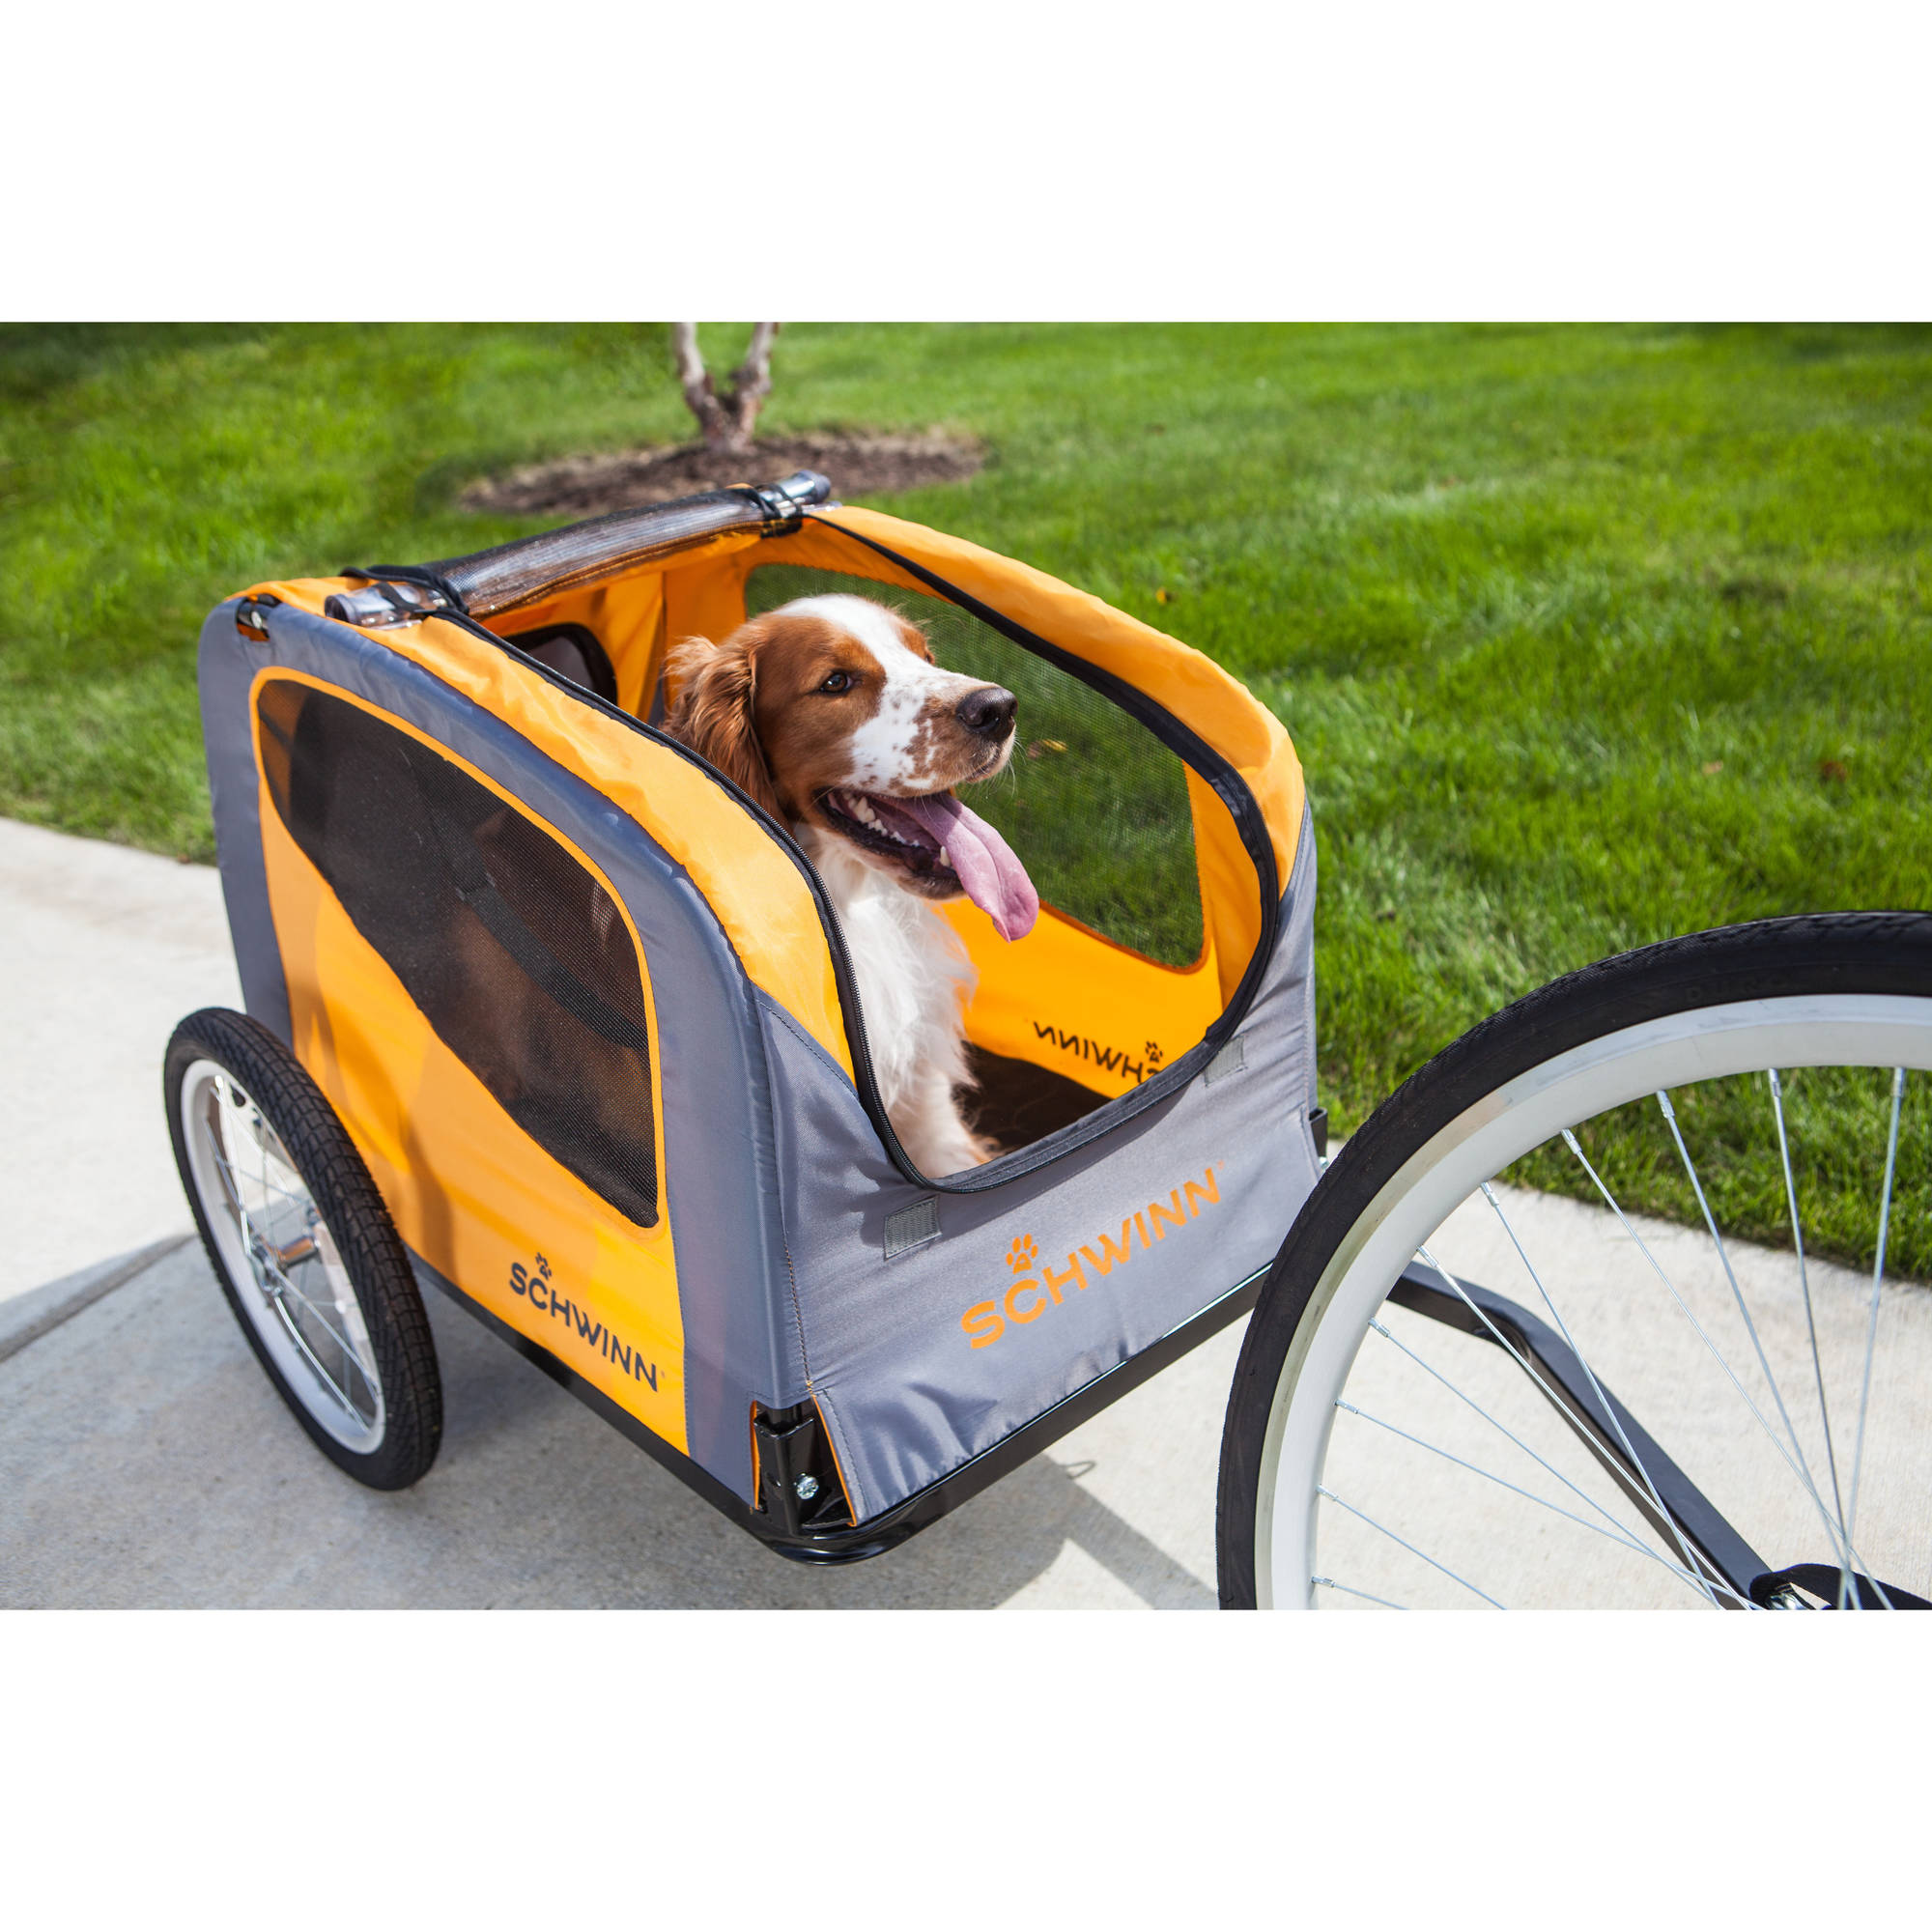 Schwinn Rascal Bike Pet Trailer, Orange